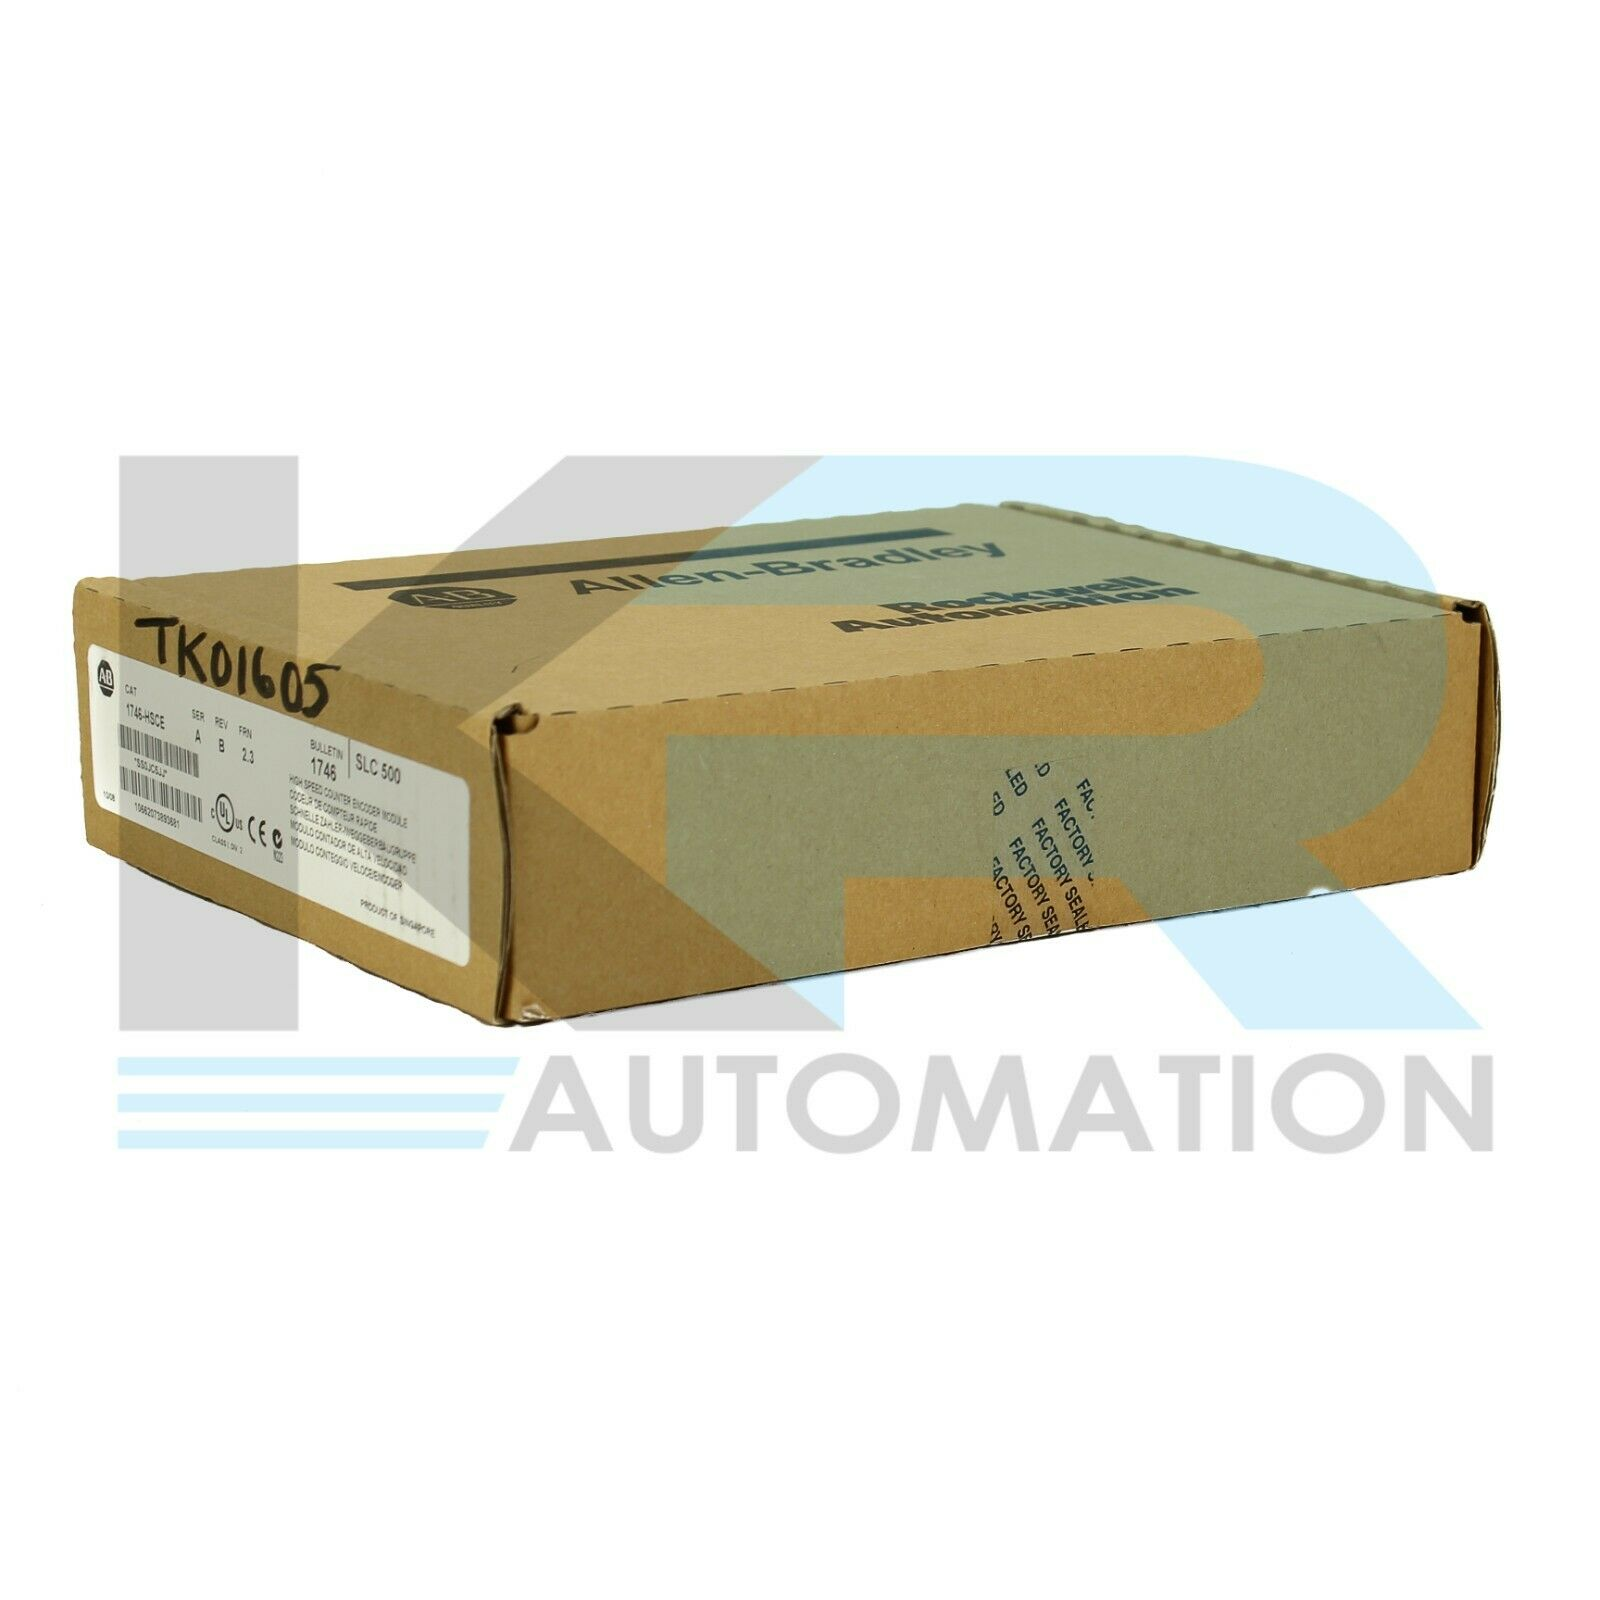 New Allen Bradley 1746-HSCE /A 2020 SLC 500 High-Speed Counter Module FRN 2.3